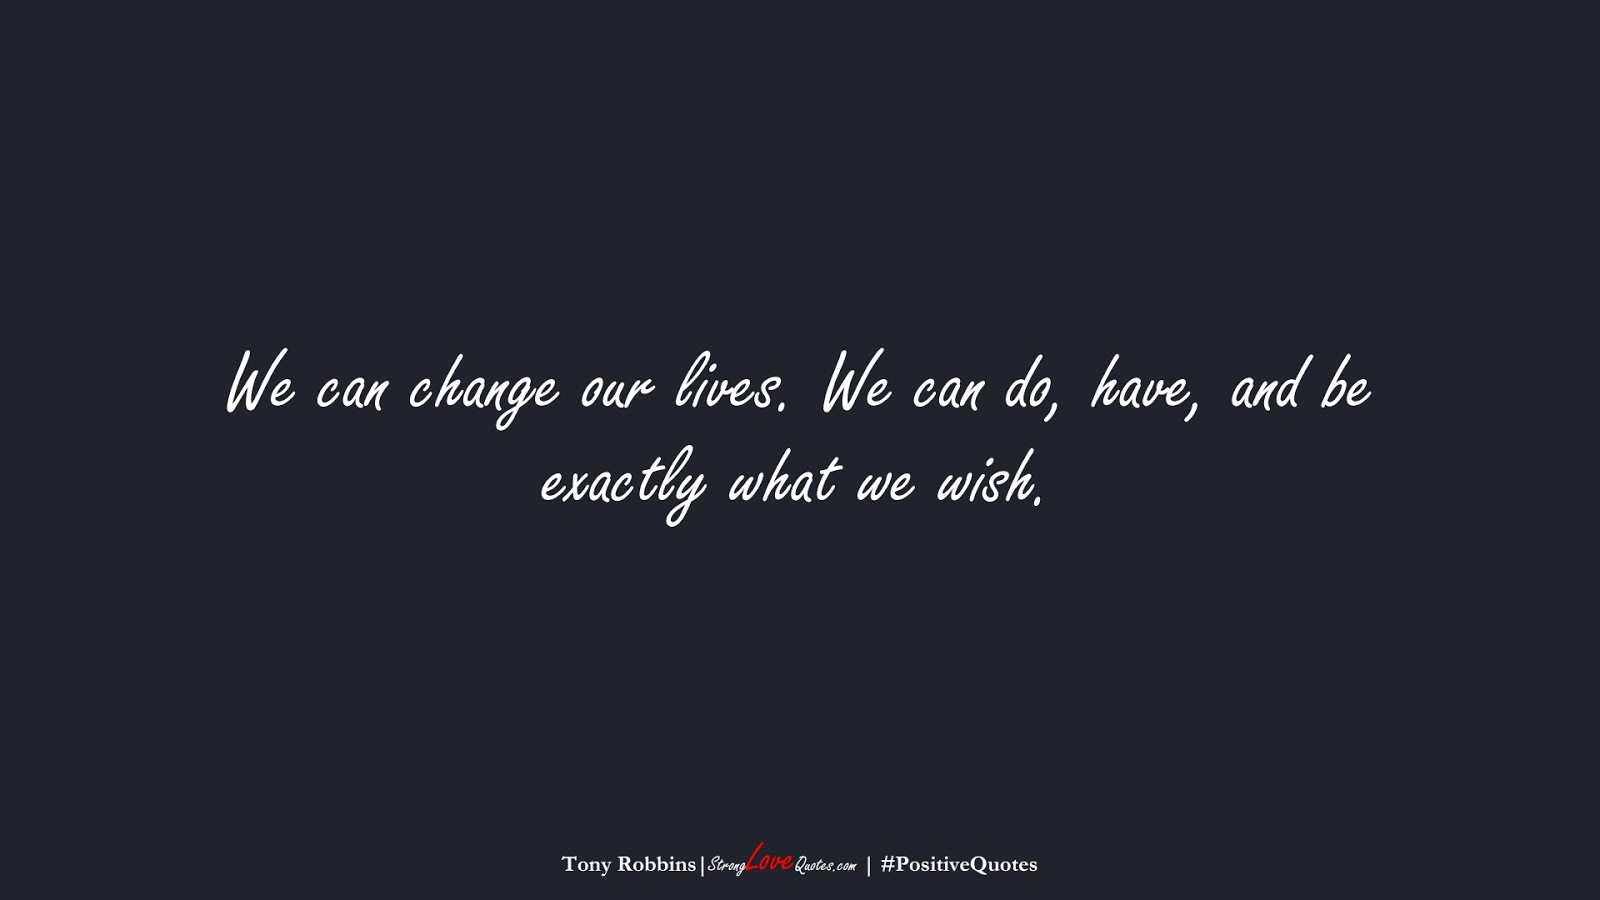 We can change our lives. We can do, have, and be exactly what we wish. (Tony Robbins);  #PositiveQuotes